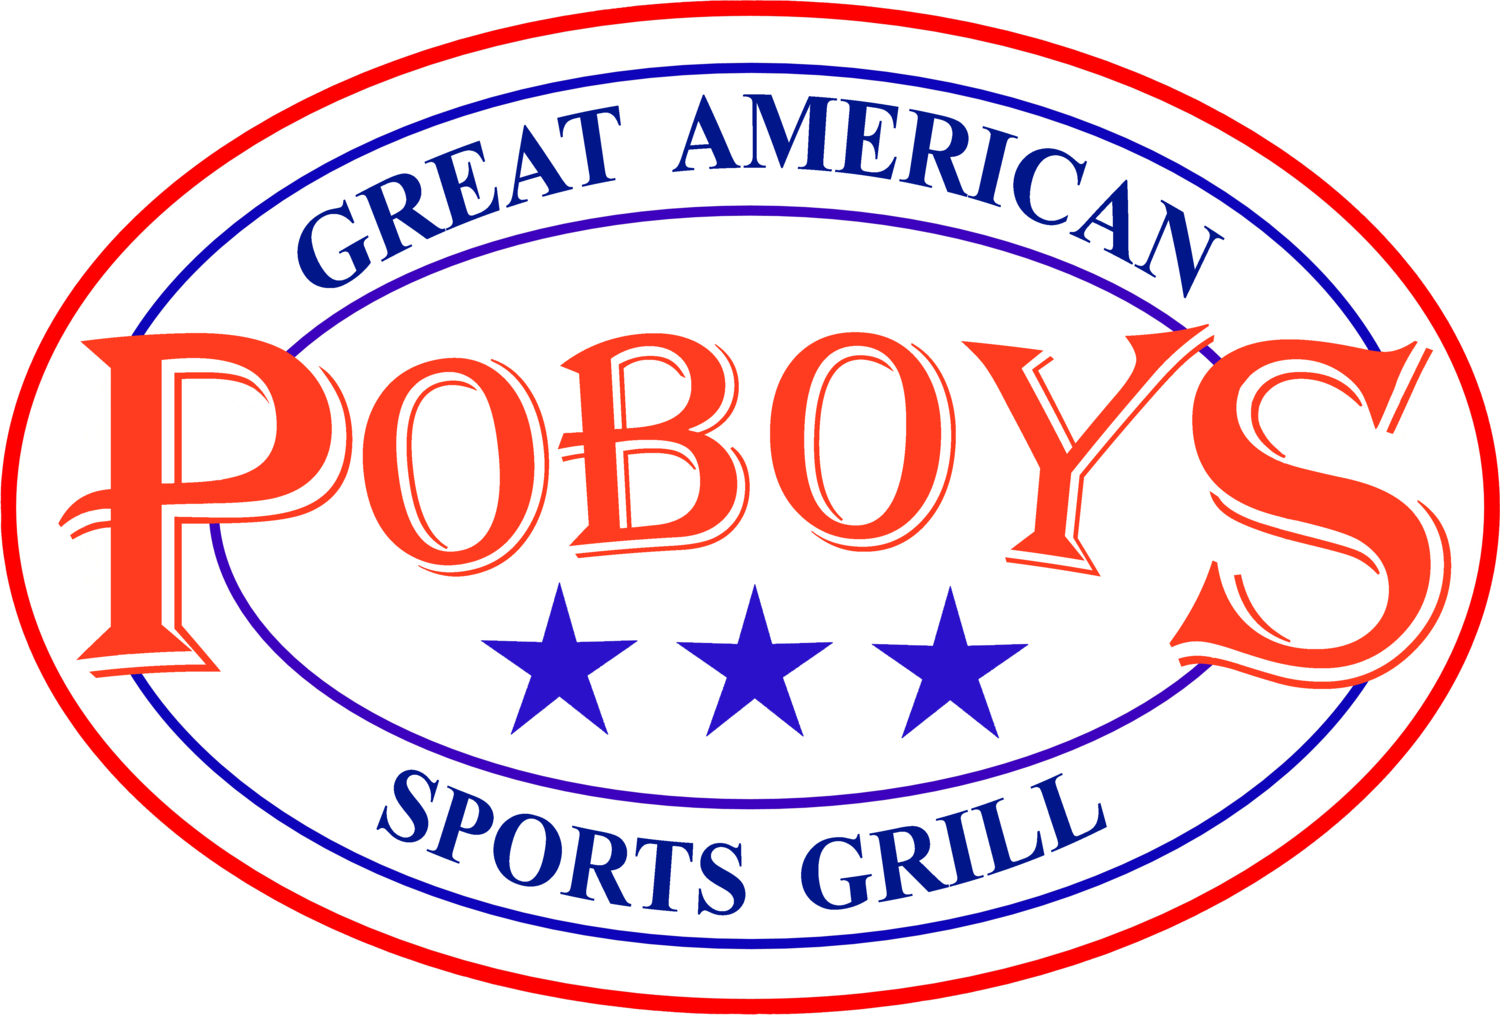 PoBoys GREAT AMERICAN Sports Grill